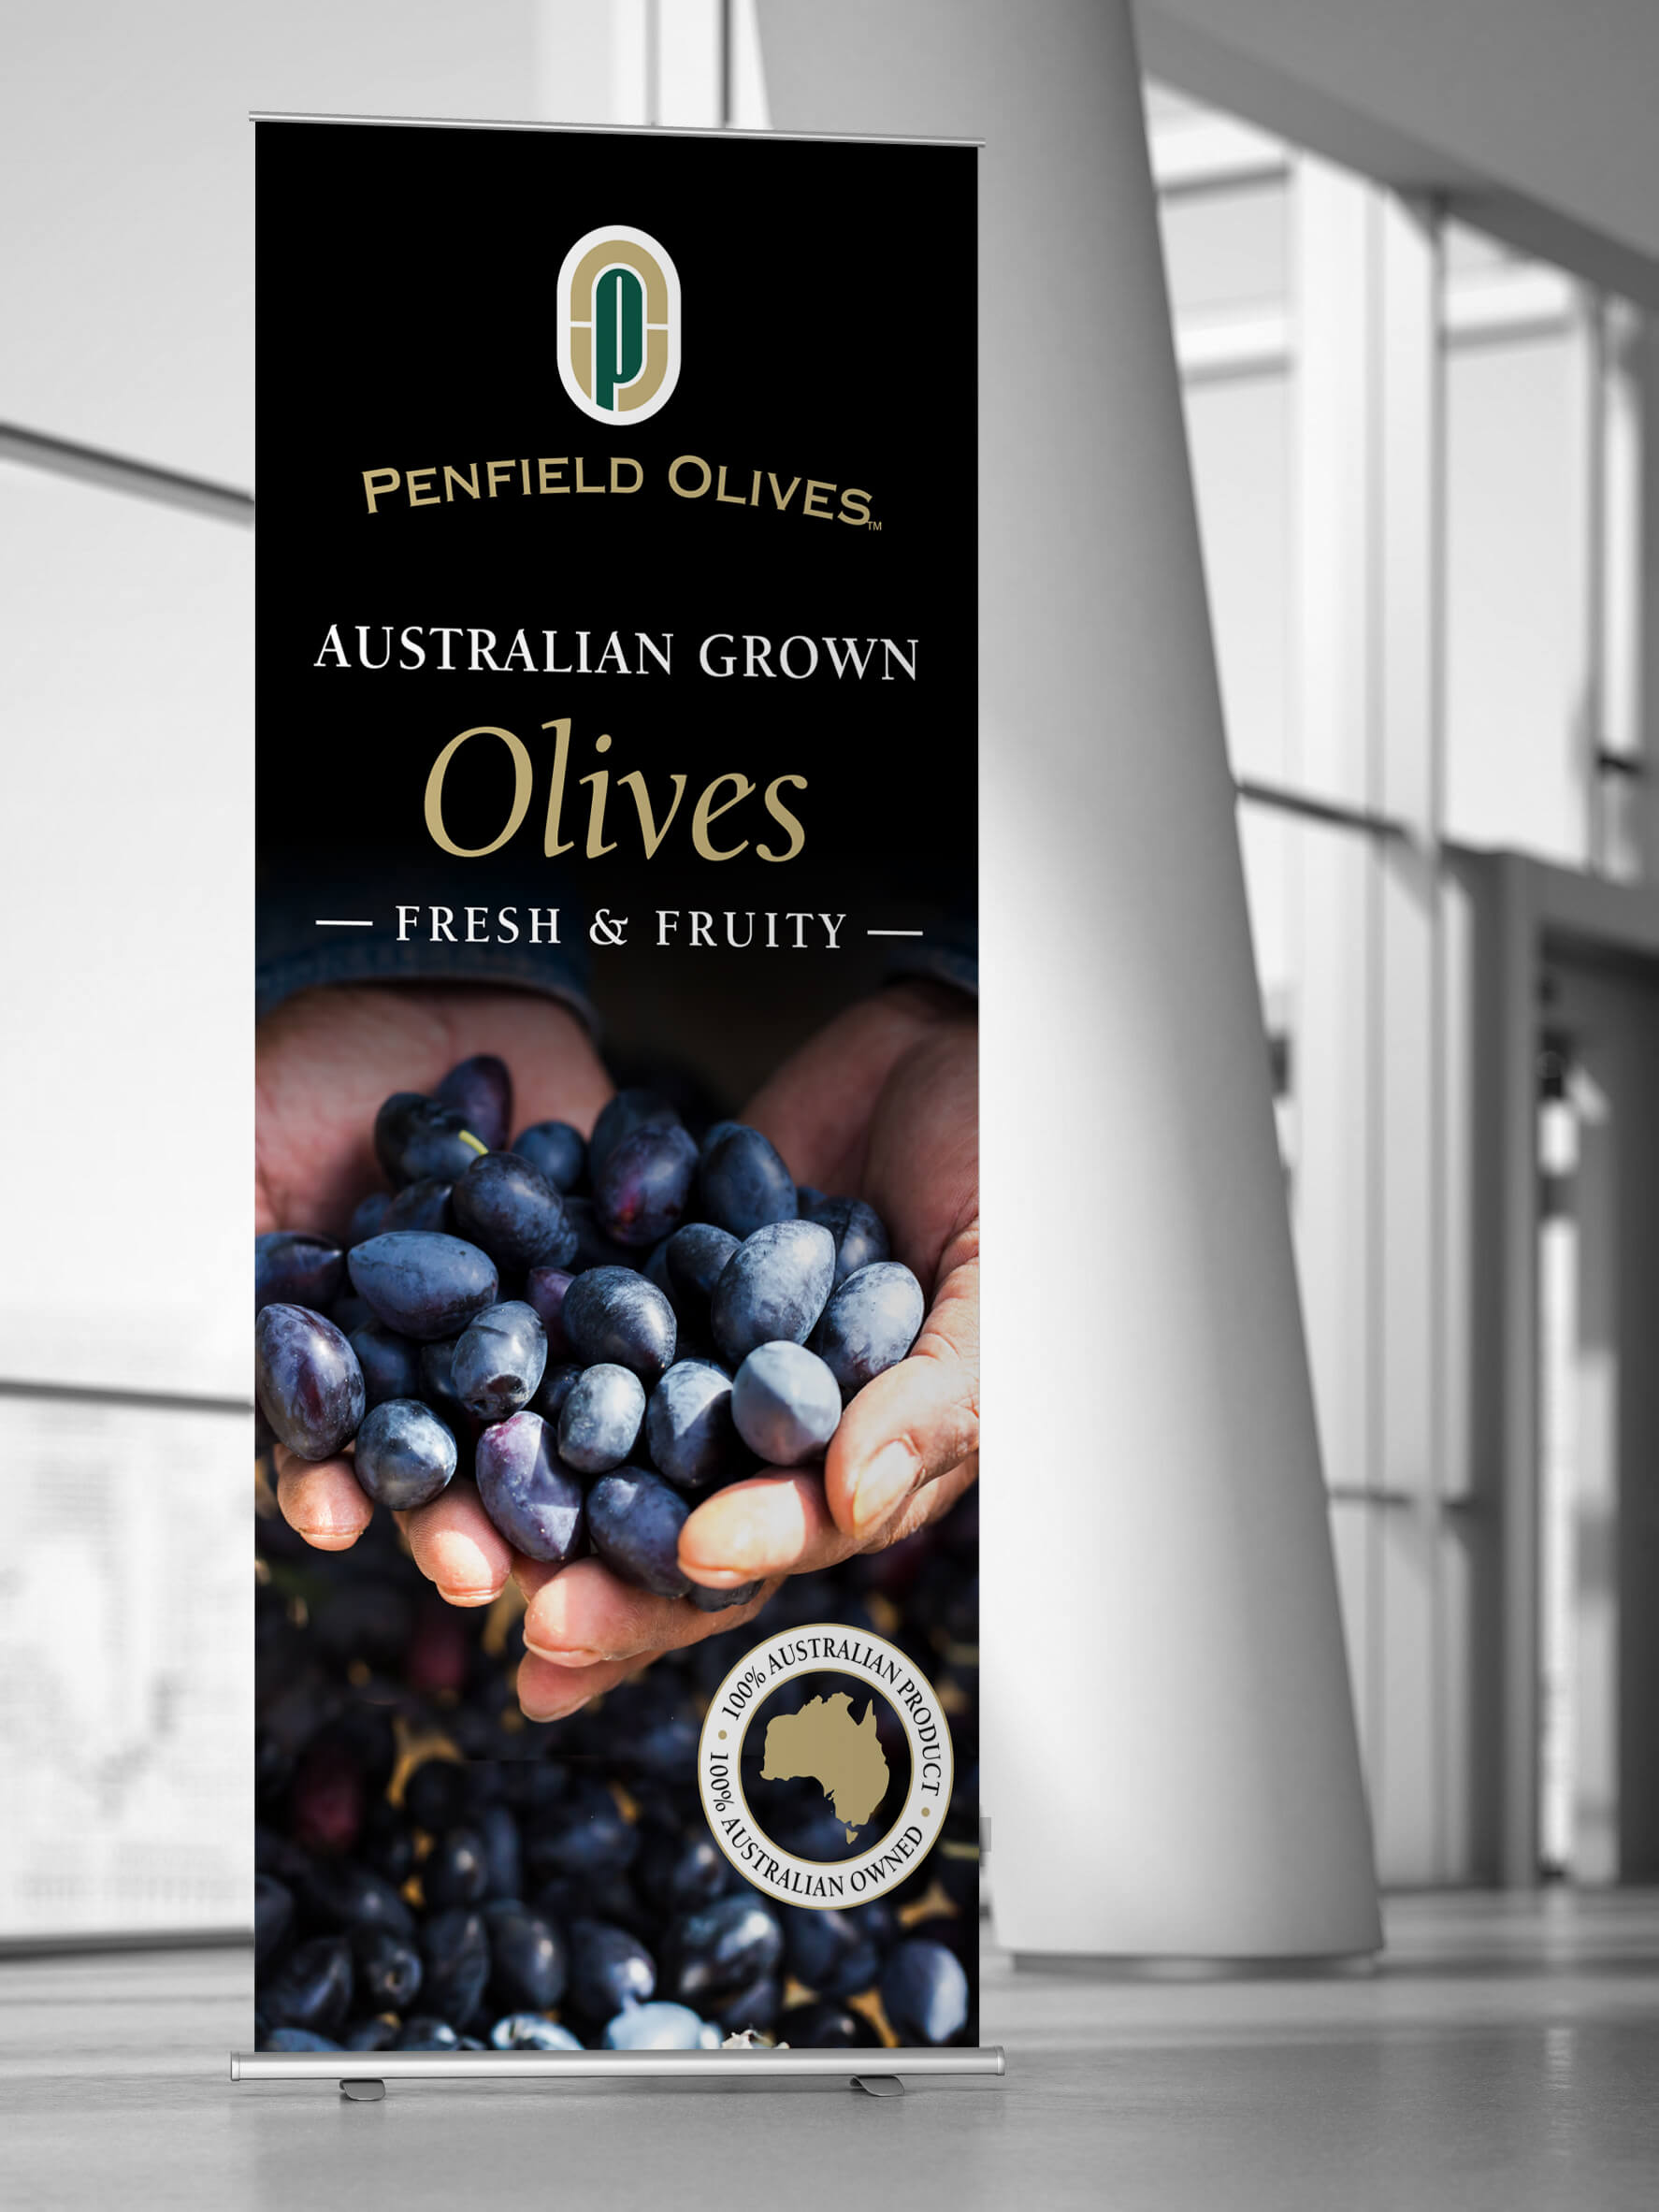 Icon Graphic Design Adelaide - business card design page image of Penfield Olives pull-up display.